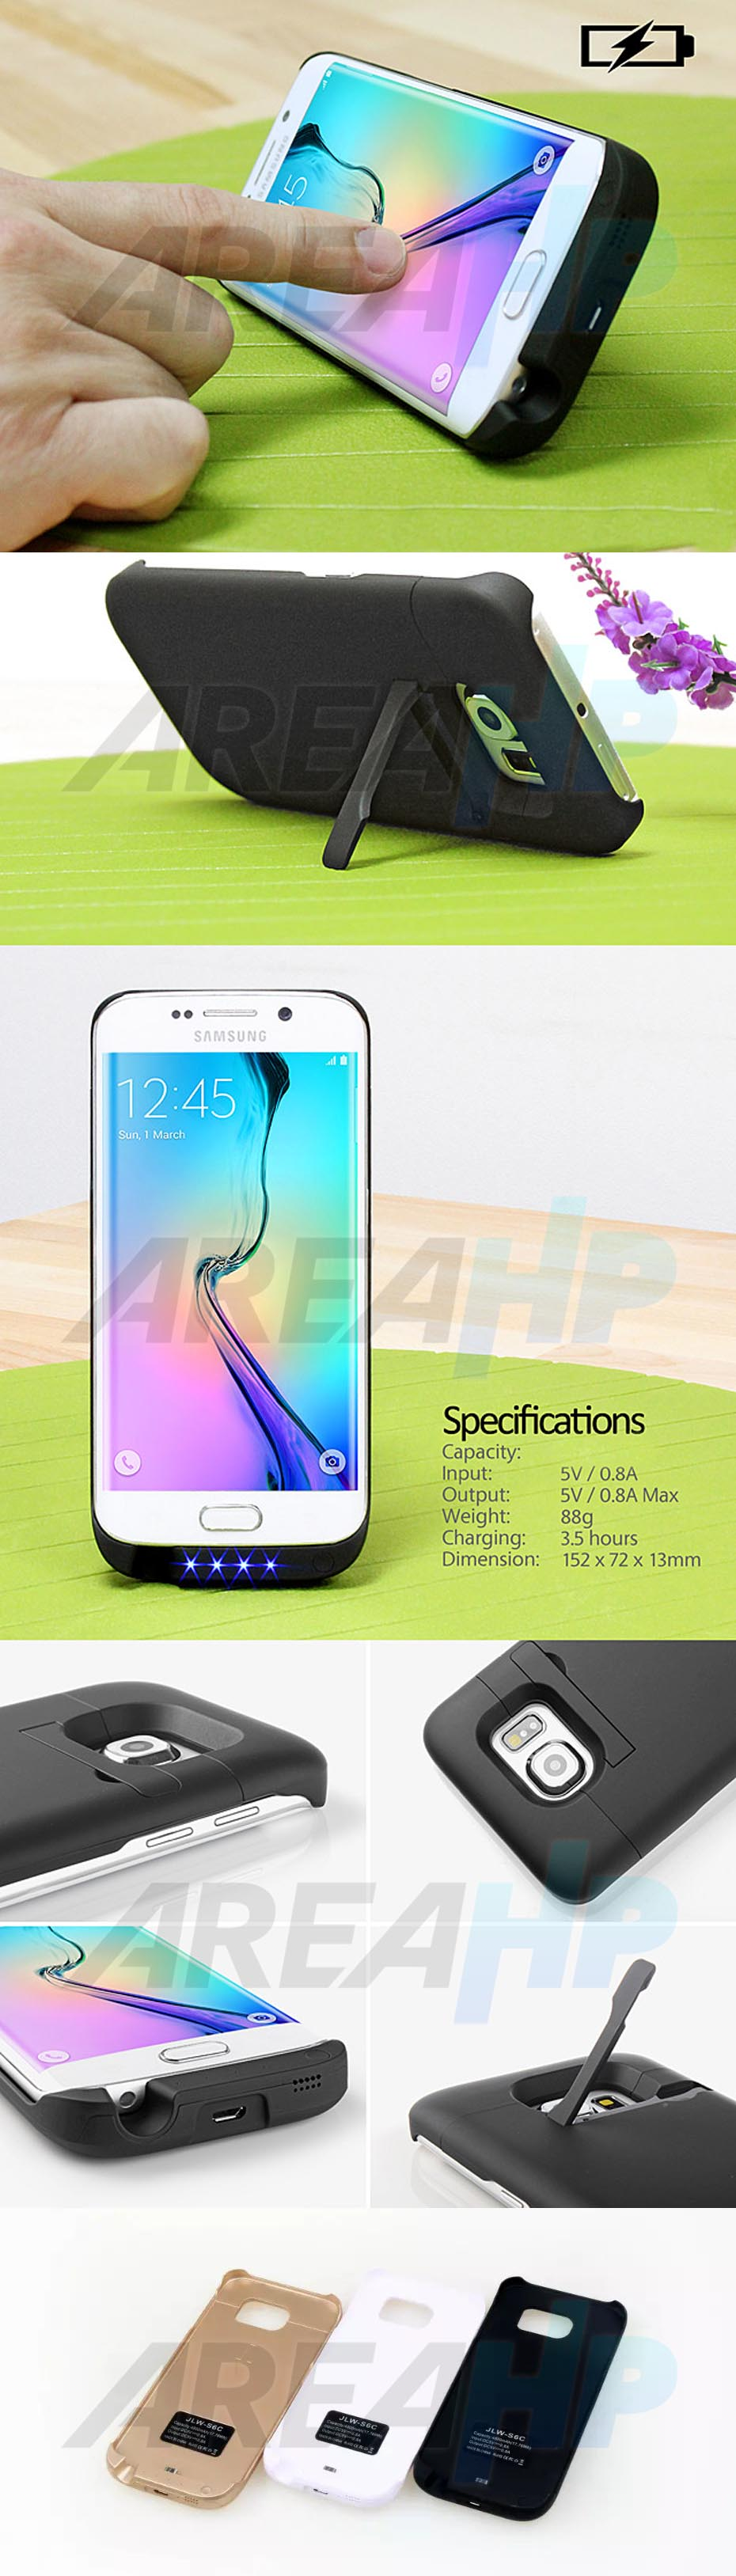 power-case-4800mah-for-samsung-s6-edge-overview